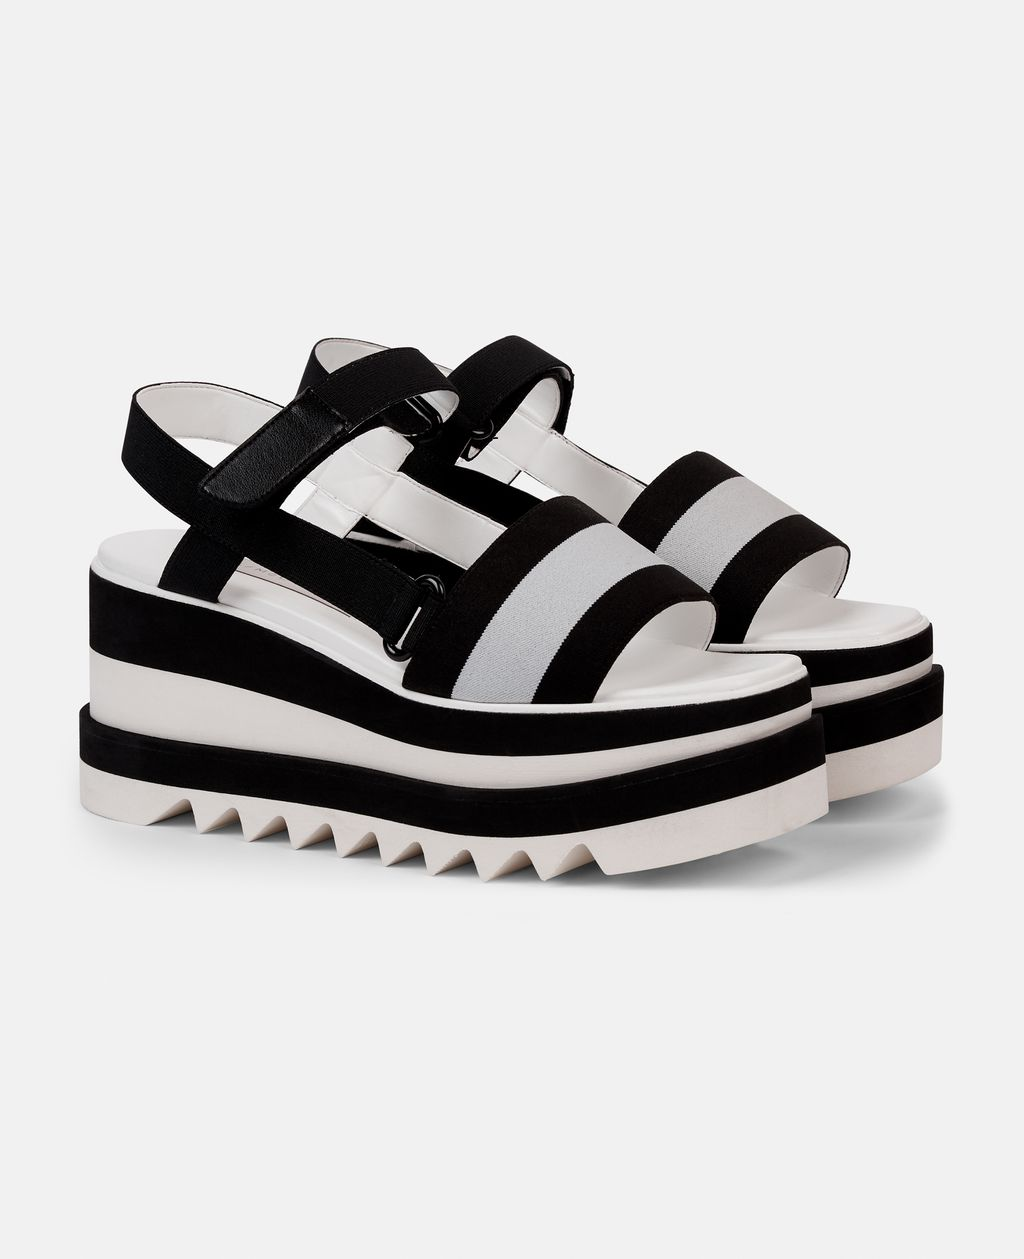 We were already obsessed with the Sneak Elyse by Stella, it is no surprise that we are also obsessing over the Striped Platform Slides. These Minimalist slides featuring contrasting striped band and signature raw-edged platform sole. Pair with a dress, jeans, or just about thing to complete your easy summer ensemble.